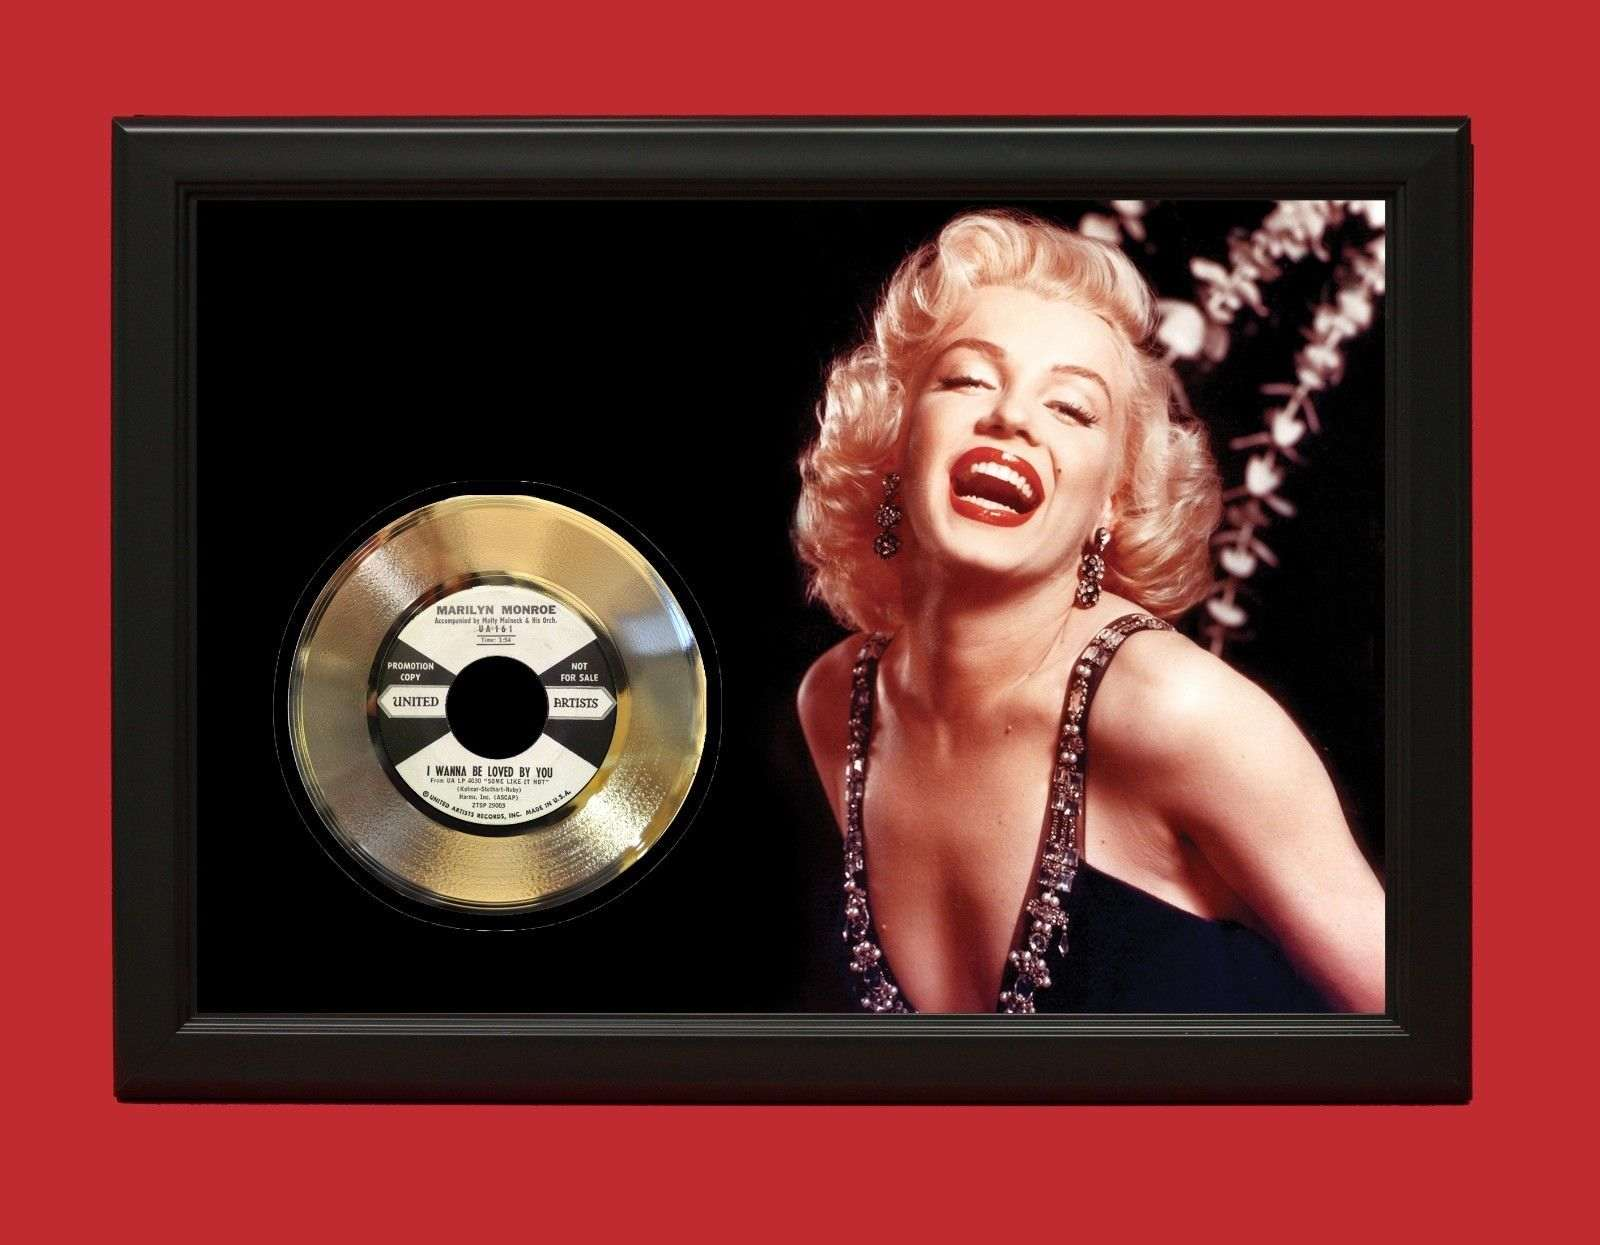 Marilyn Monroe Poster Marilyn Monroe Poster Art Wood Framed Gold 45 Display Free Us Shipping